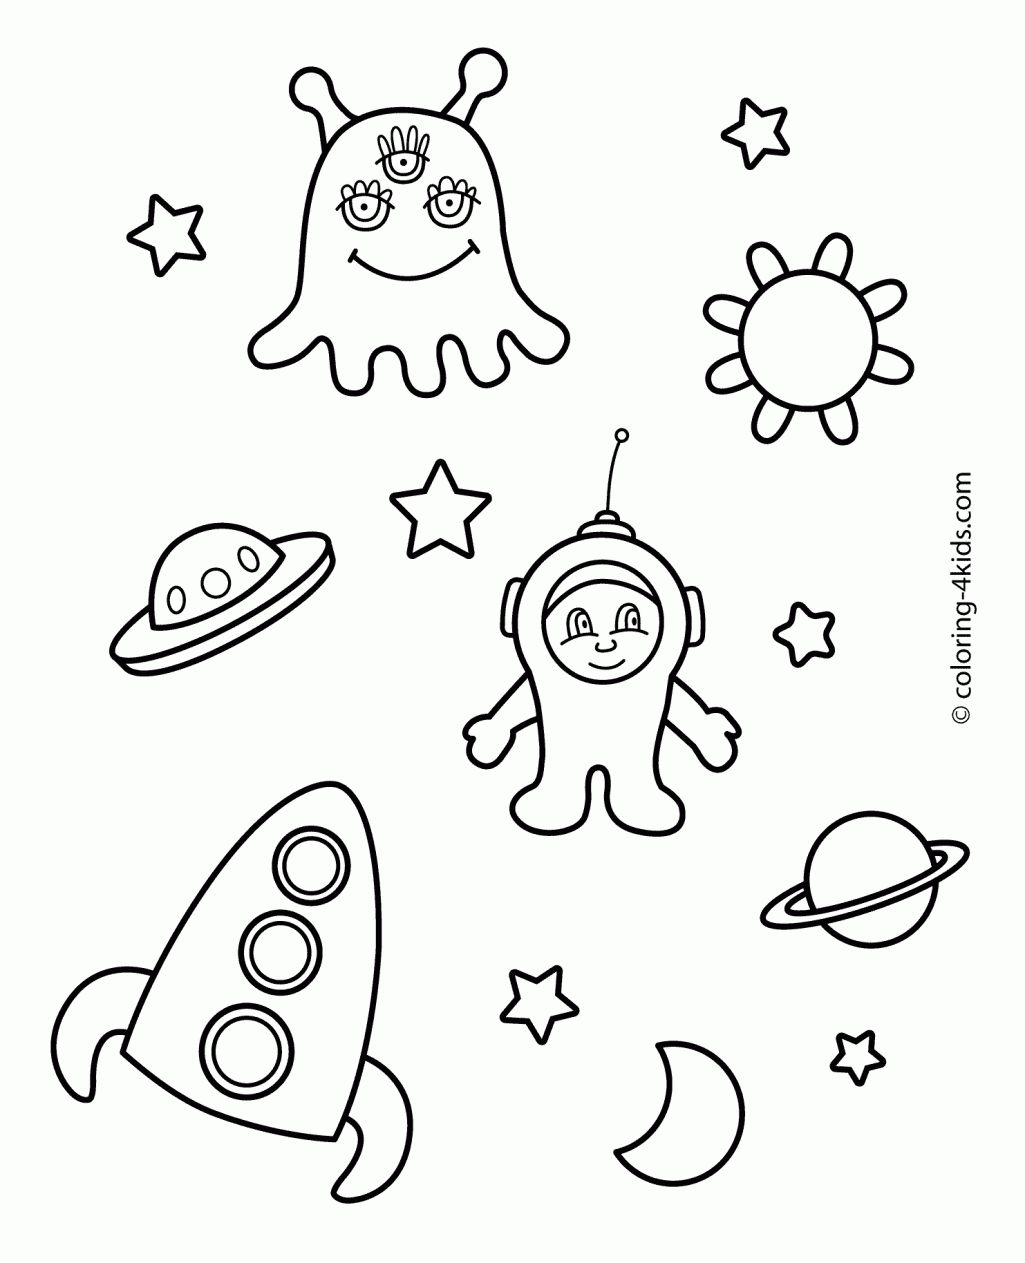 Space And Ufo Coloring Pages For Kids Printable Free Coloing Space ...